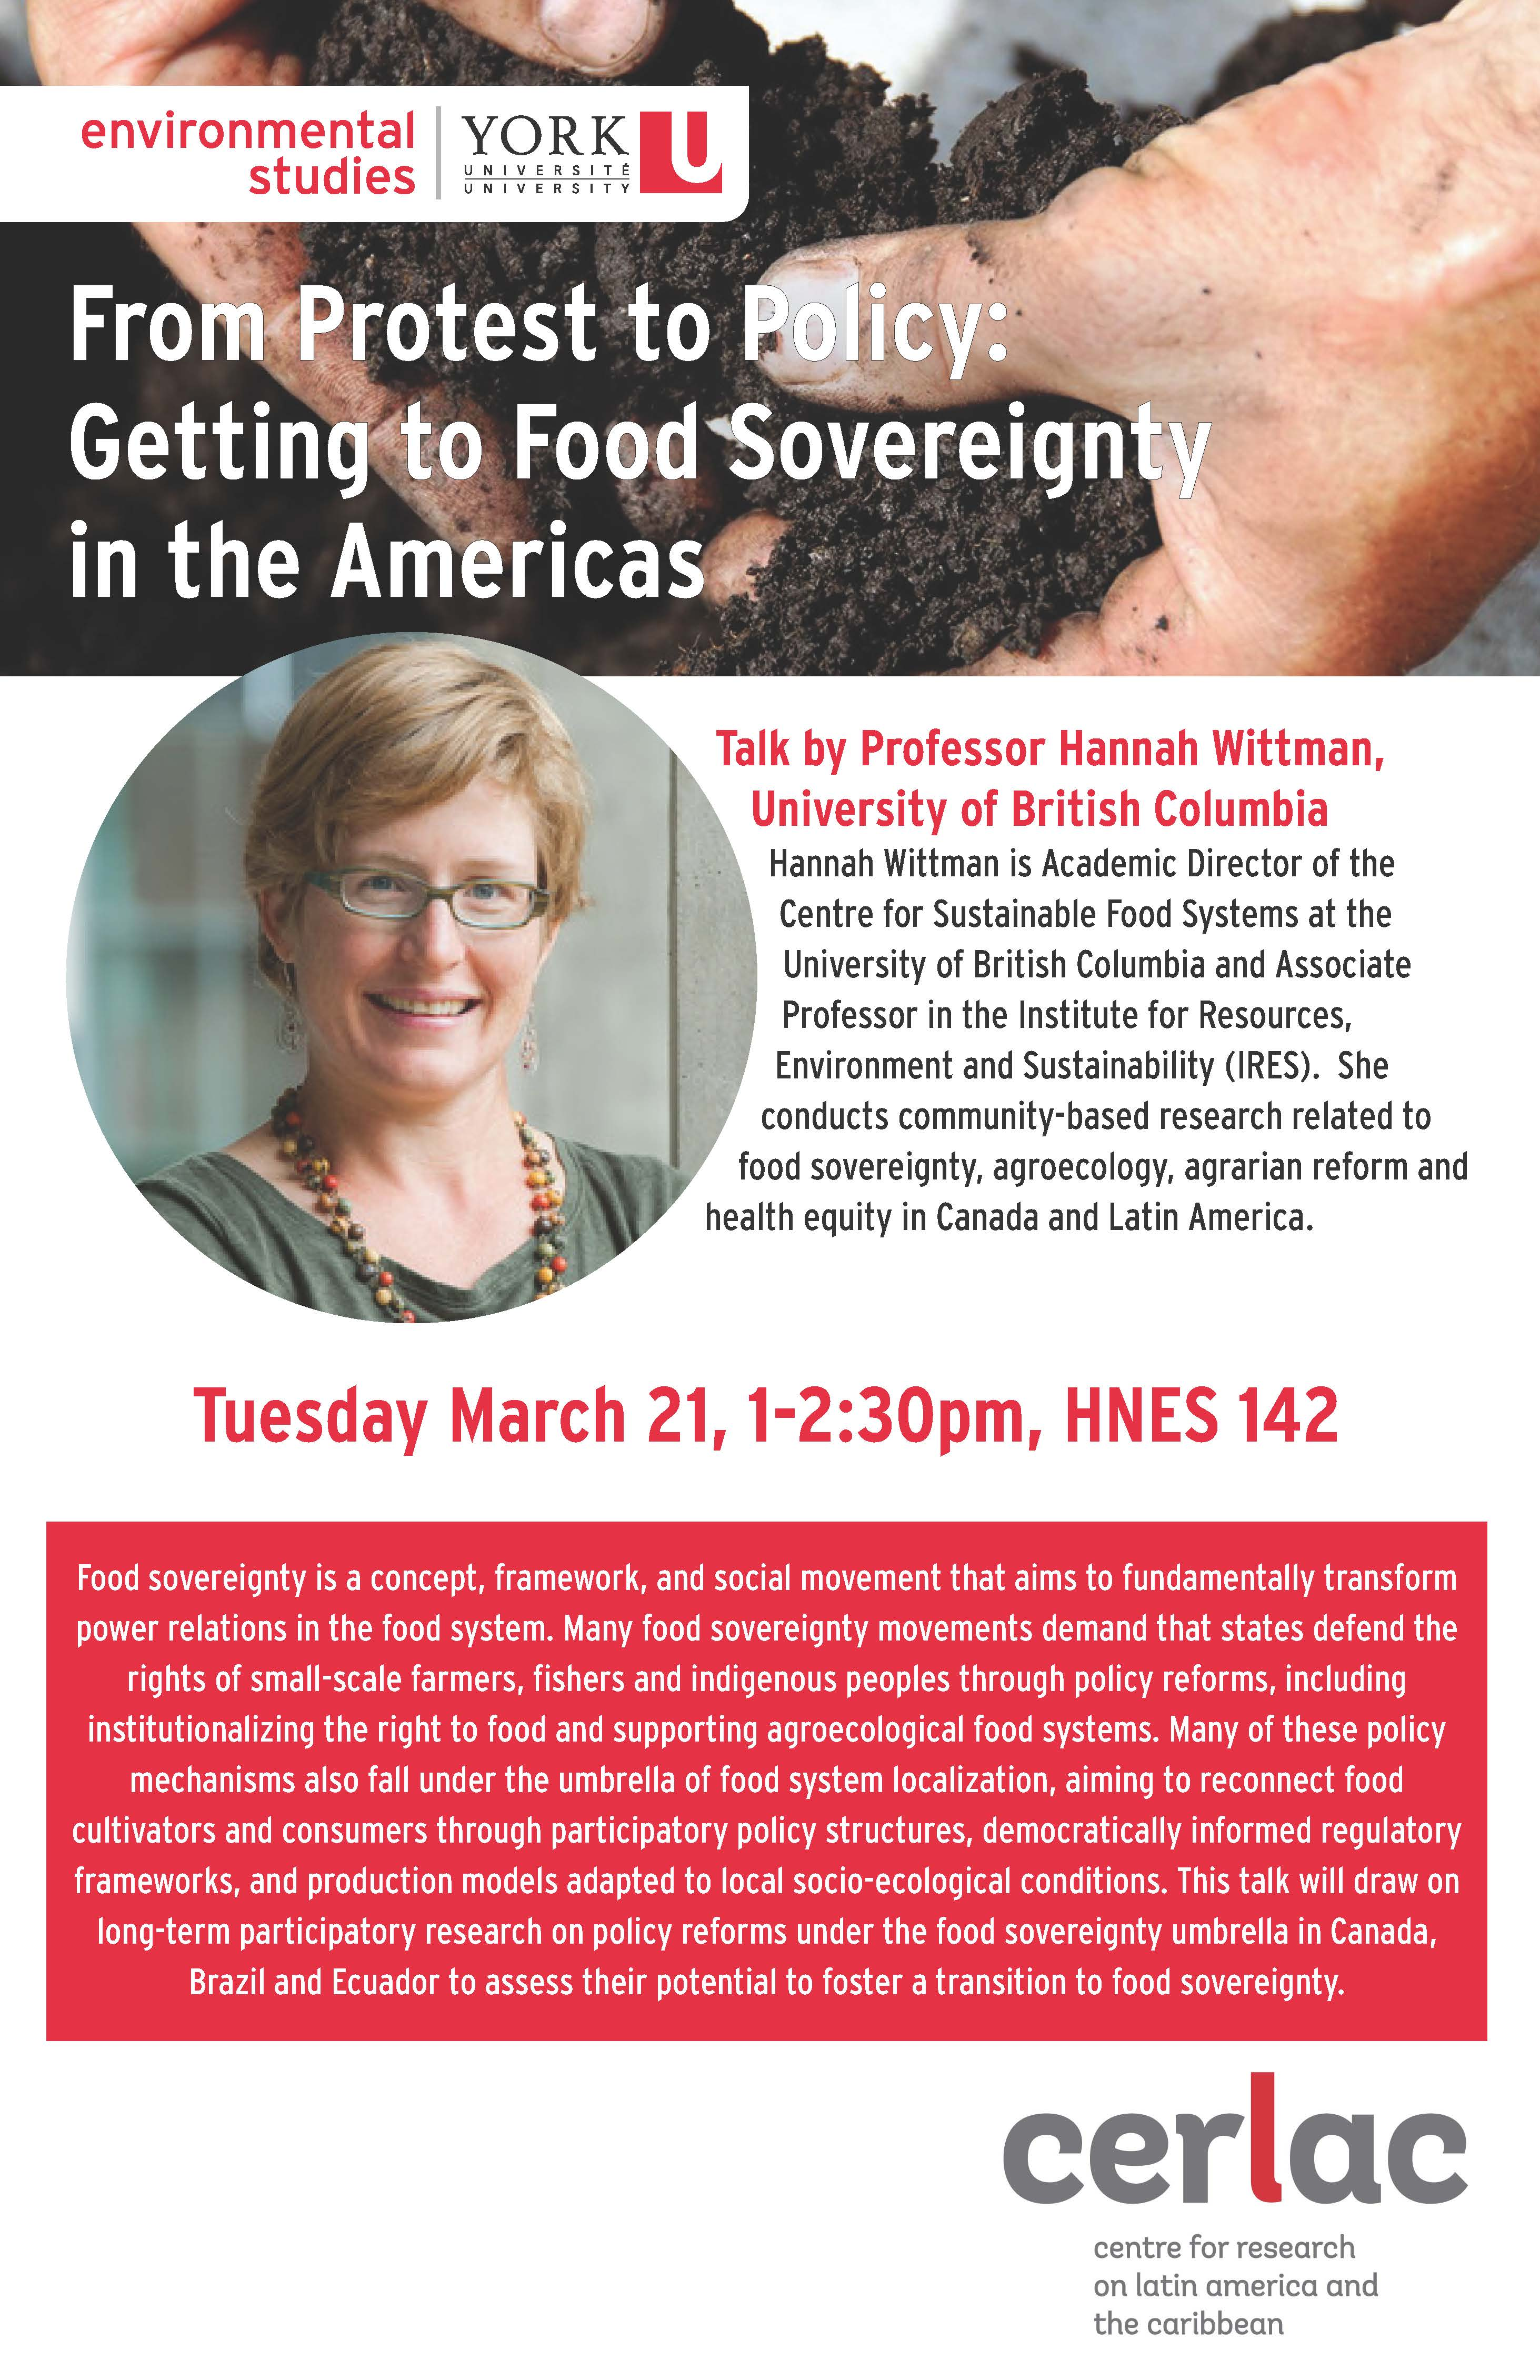 From Protest to Policy: Getting to Food Sovereignty in the Americas. Talk by Hannah Wittman. @ HNES 142